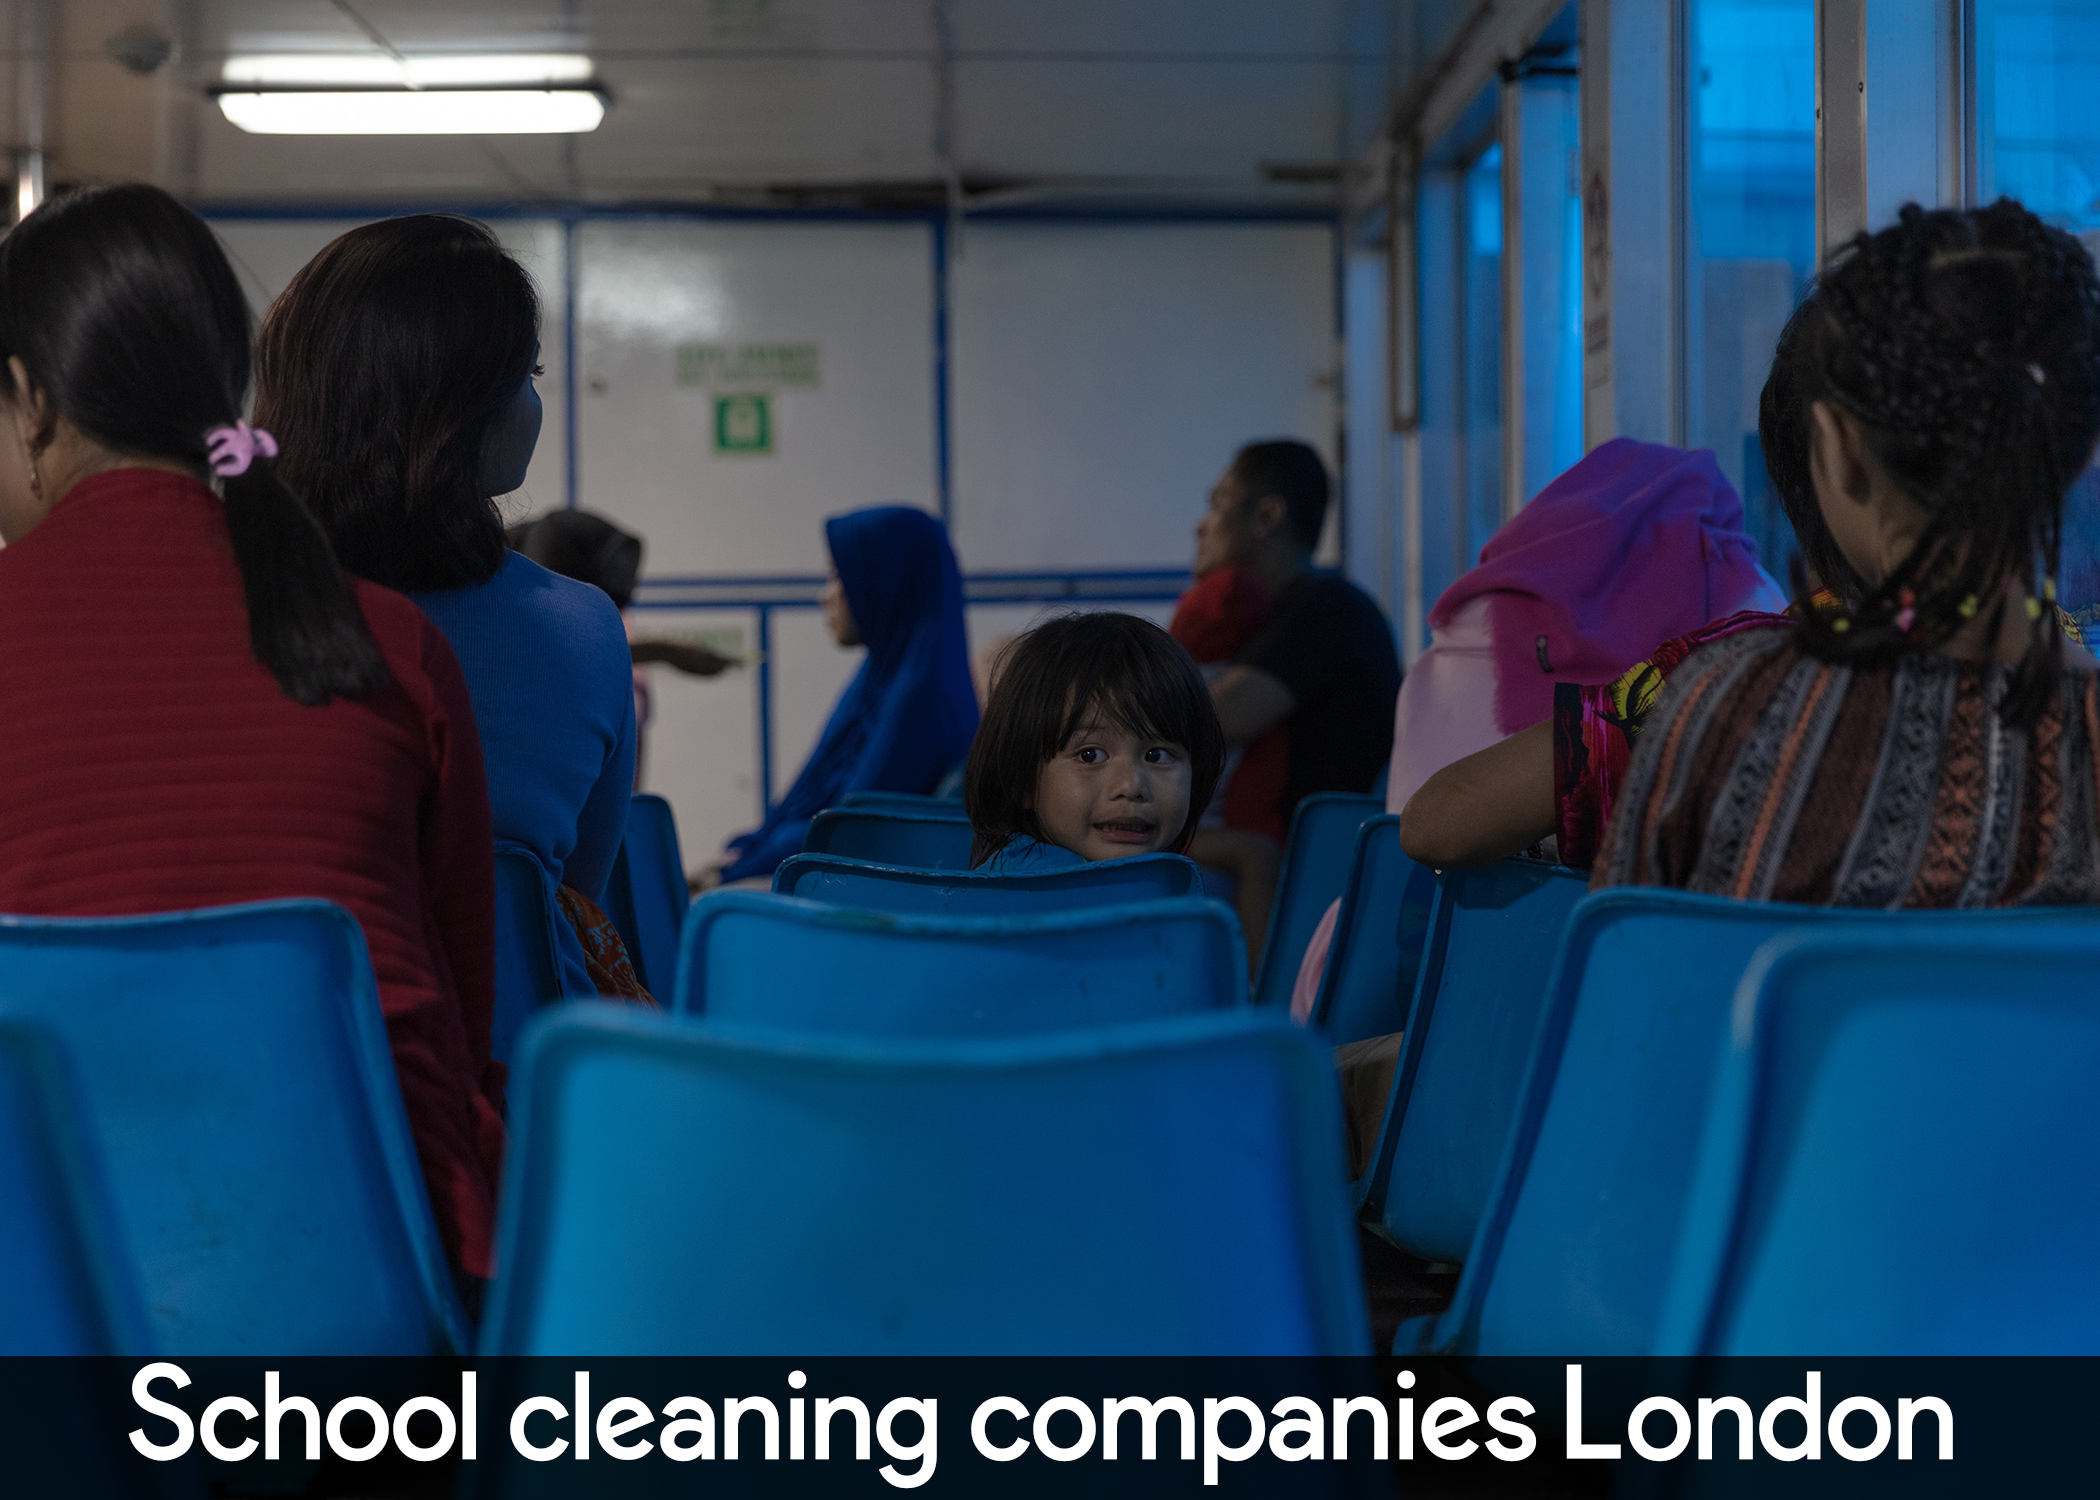 School cleaning companies London